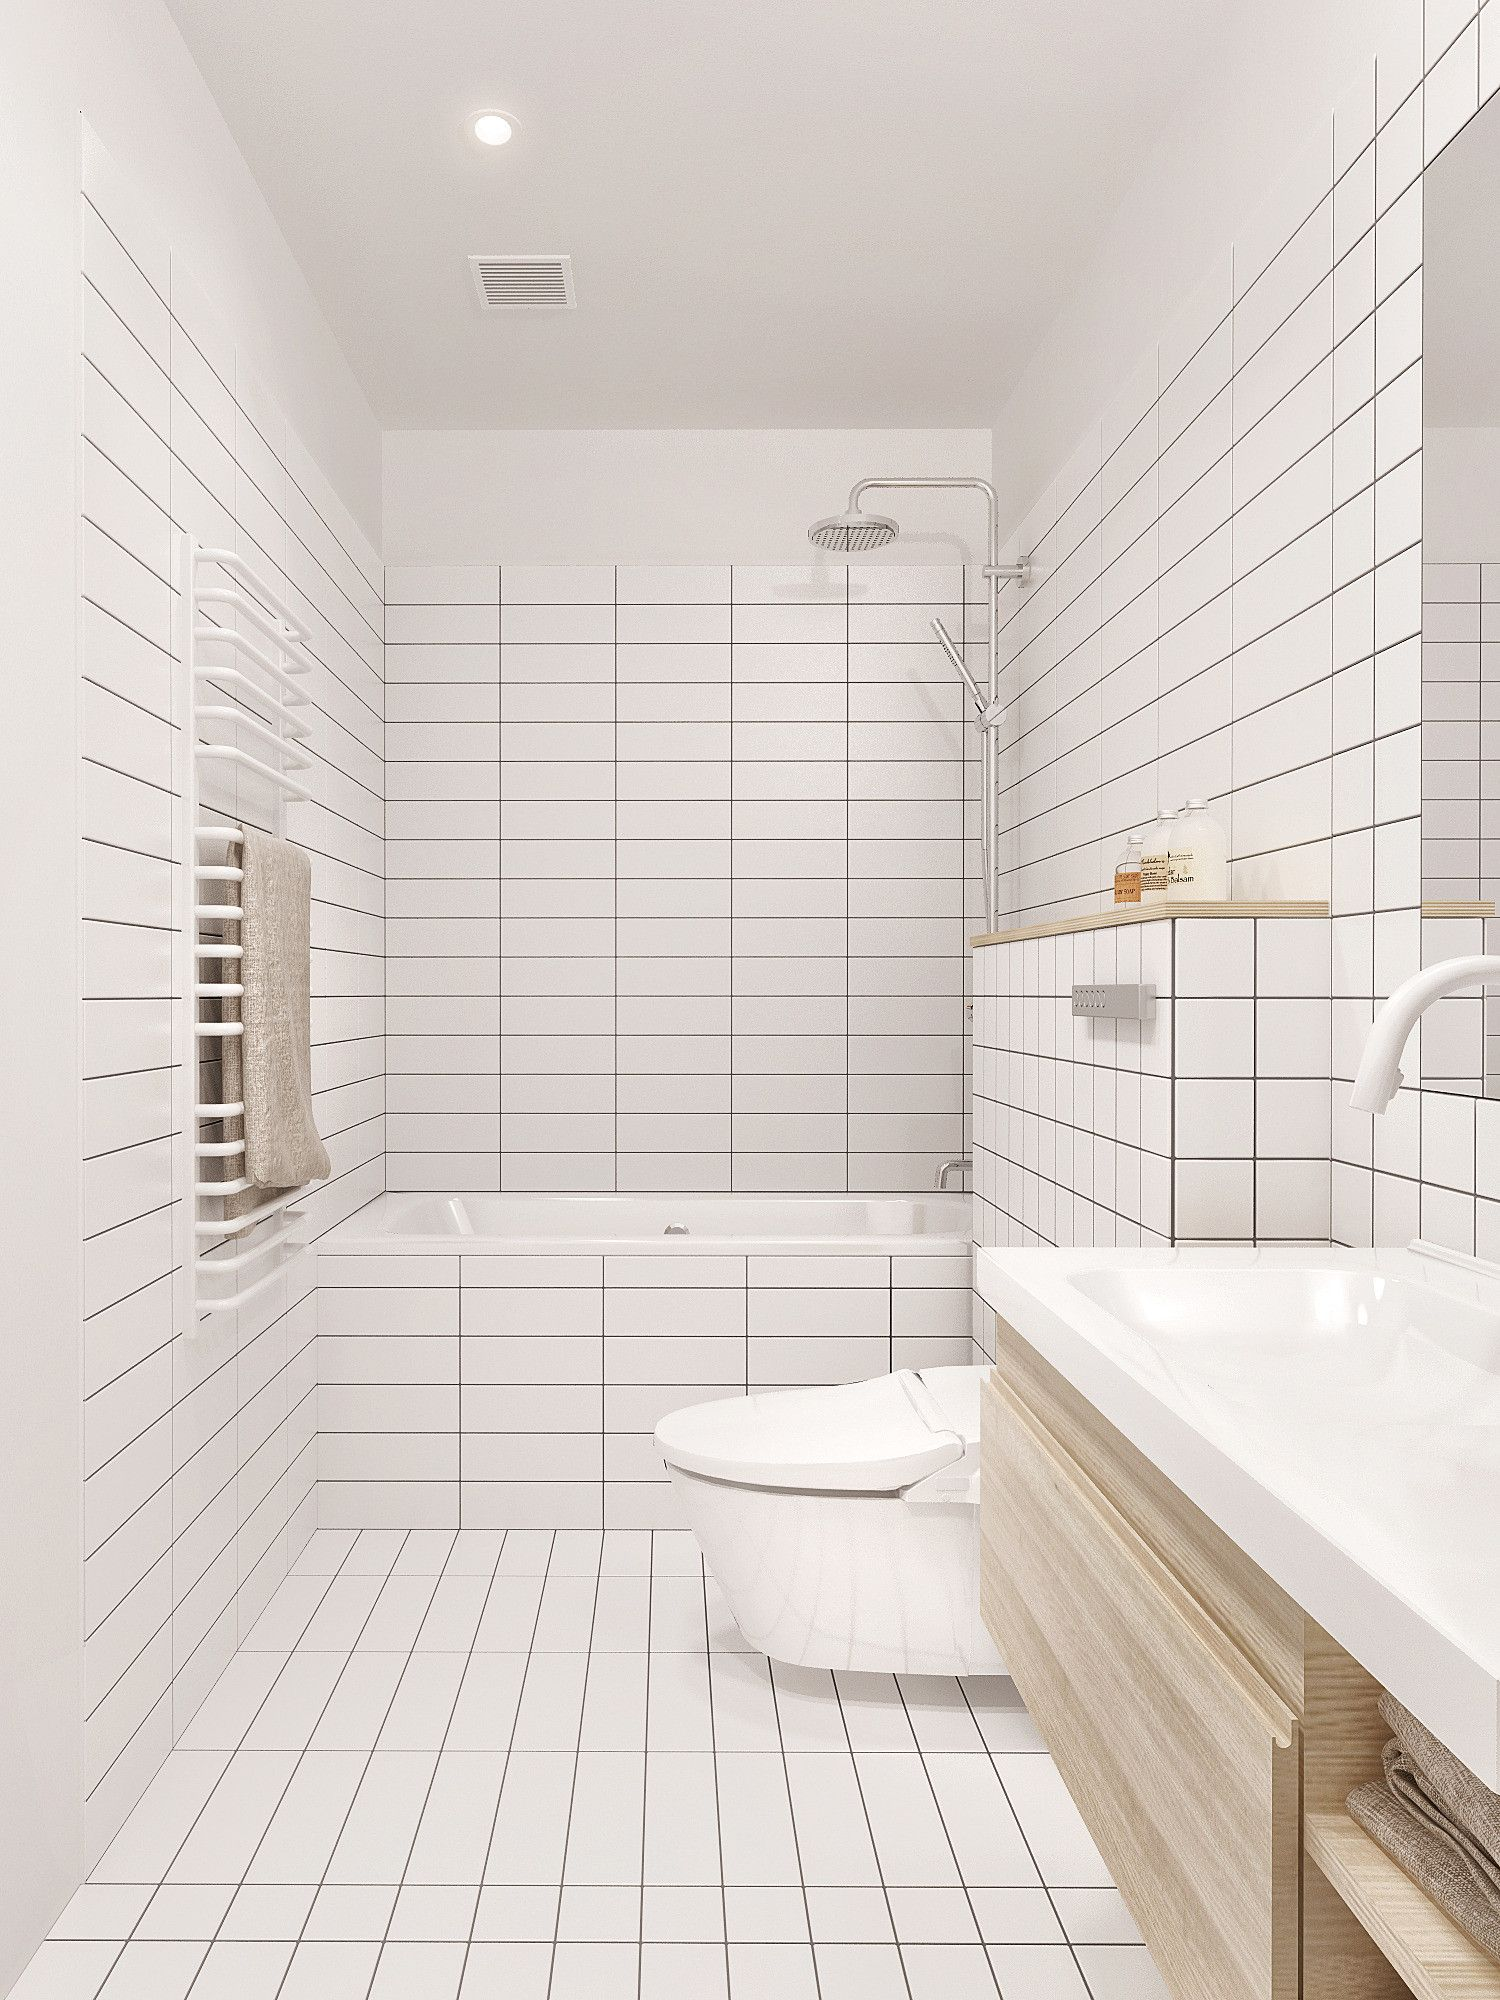 Pin by Nadya Pitulova on Bathrooms | Design | Pinterest | Bath ...